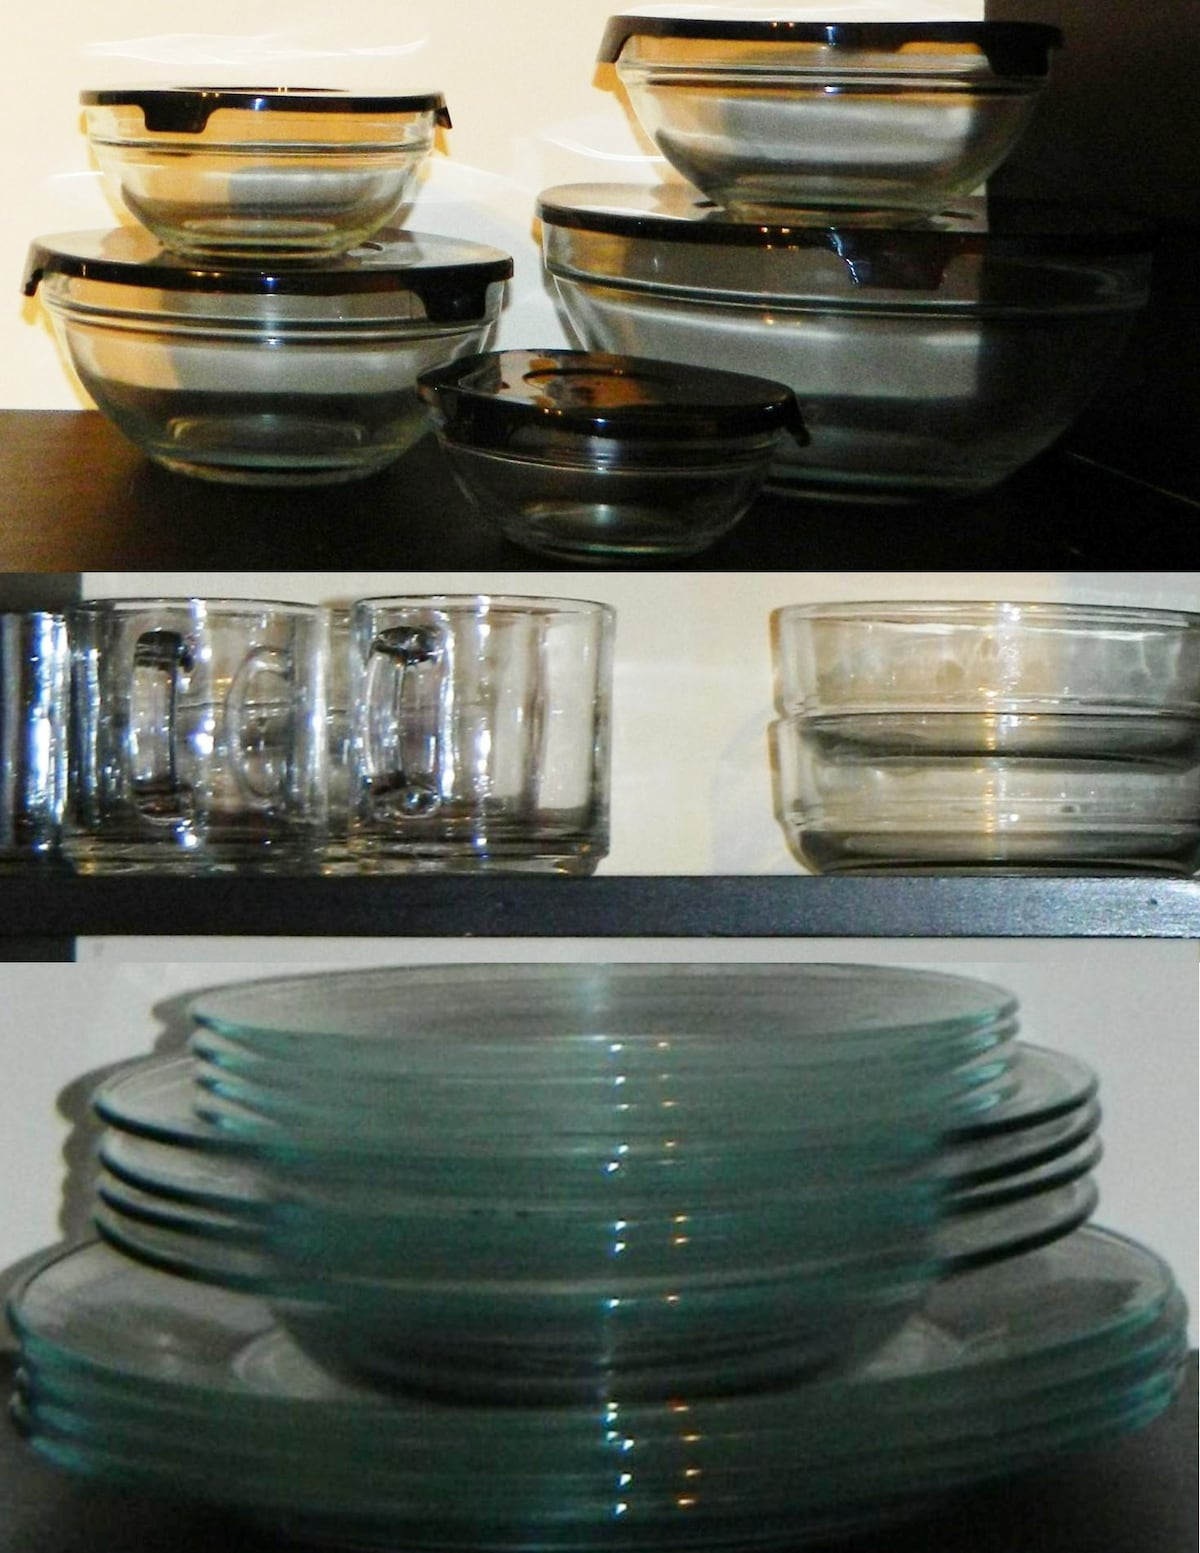 Complete set of plates, bowl, glasses